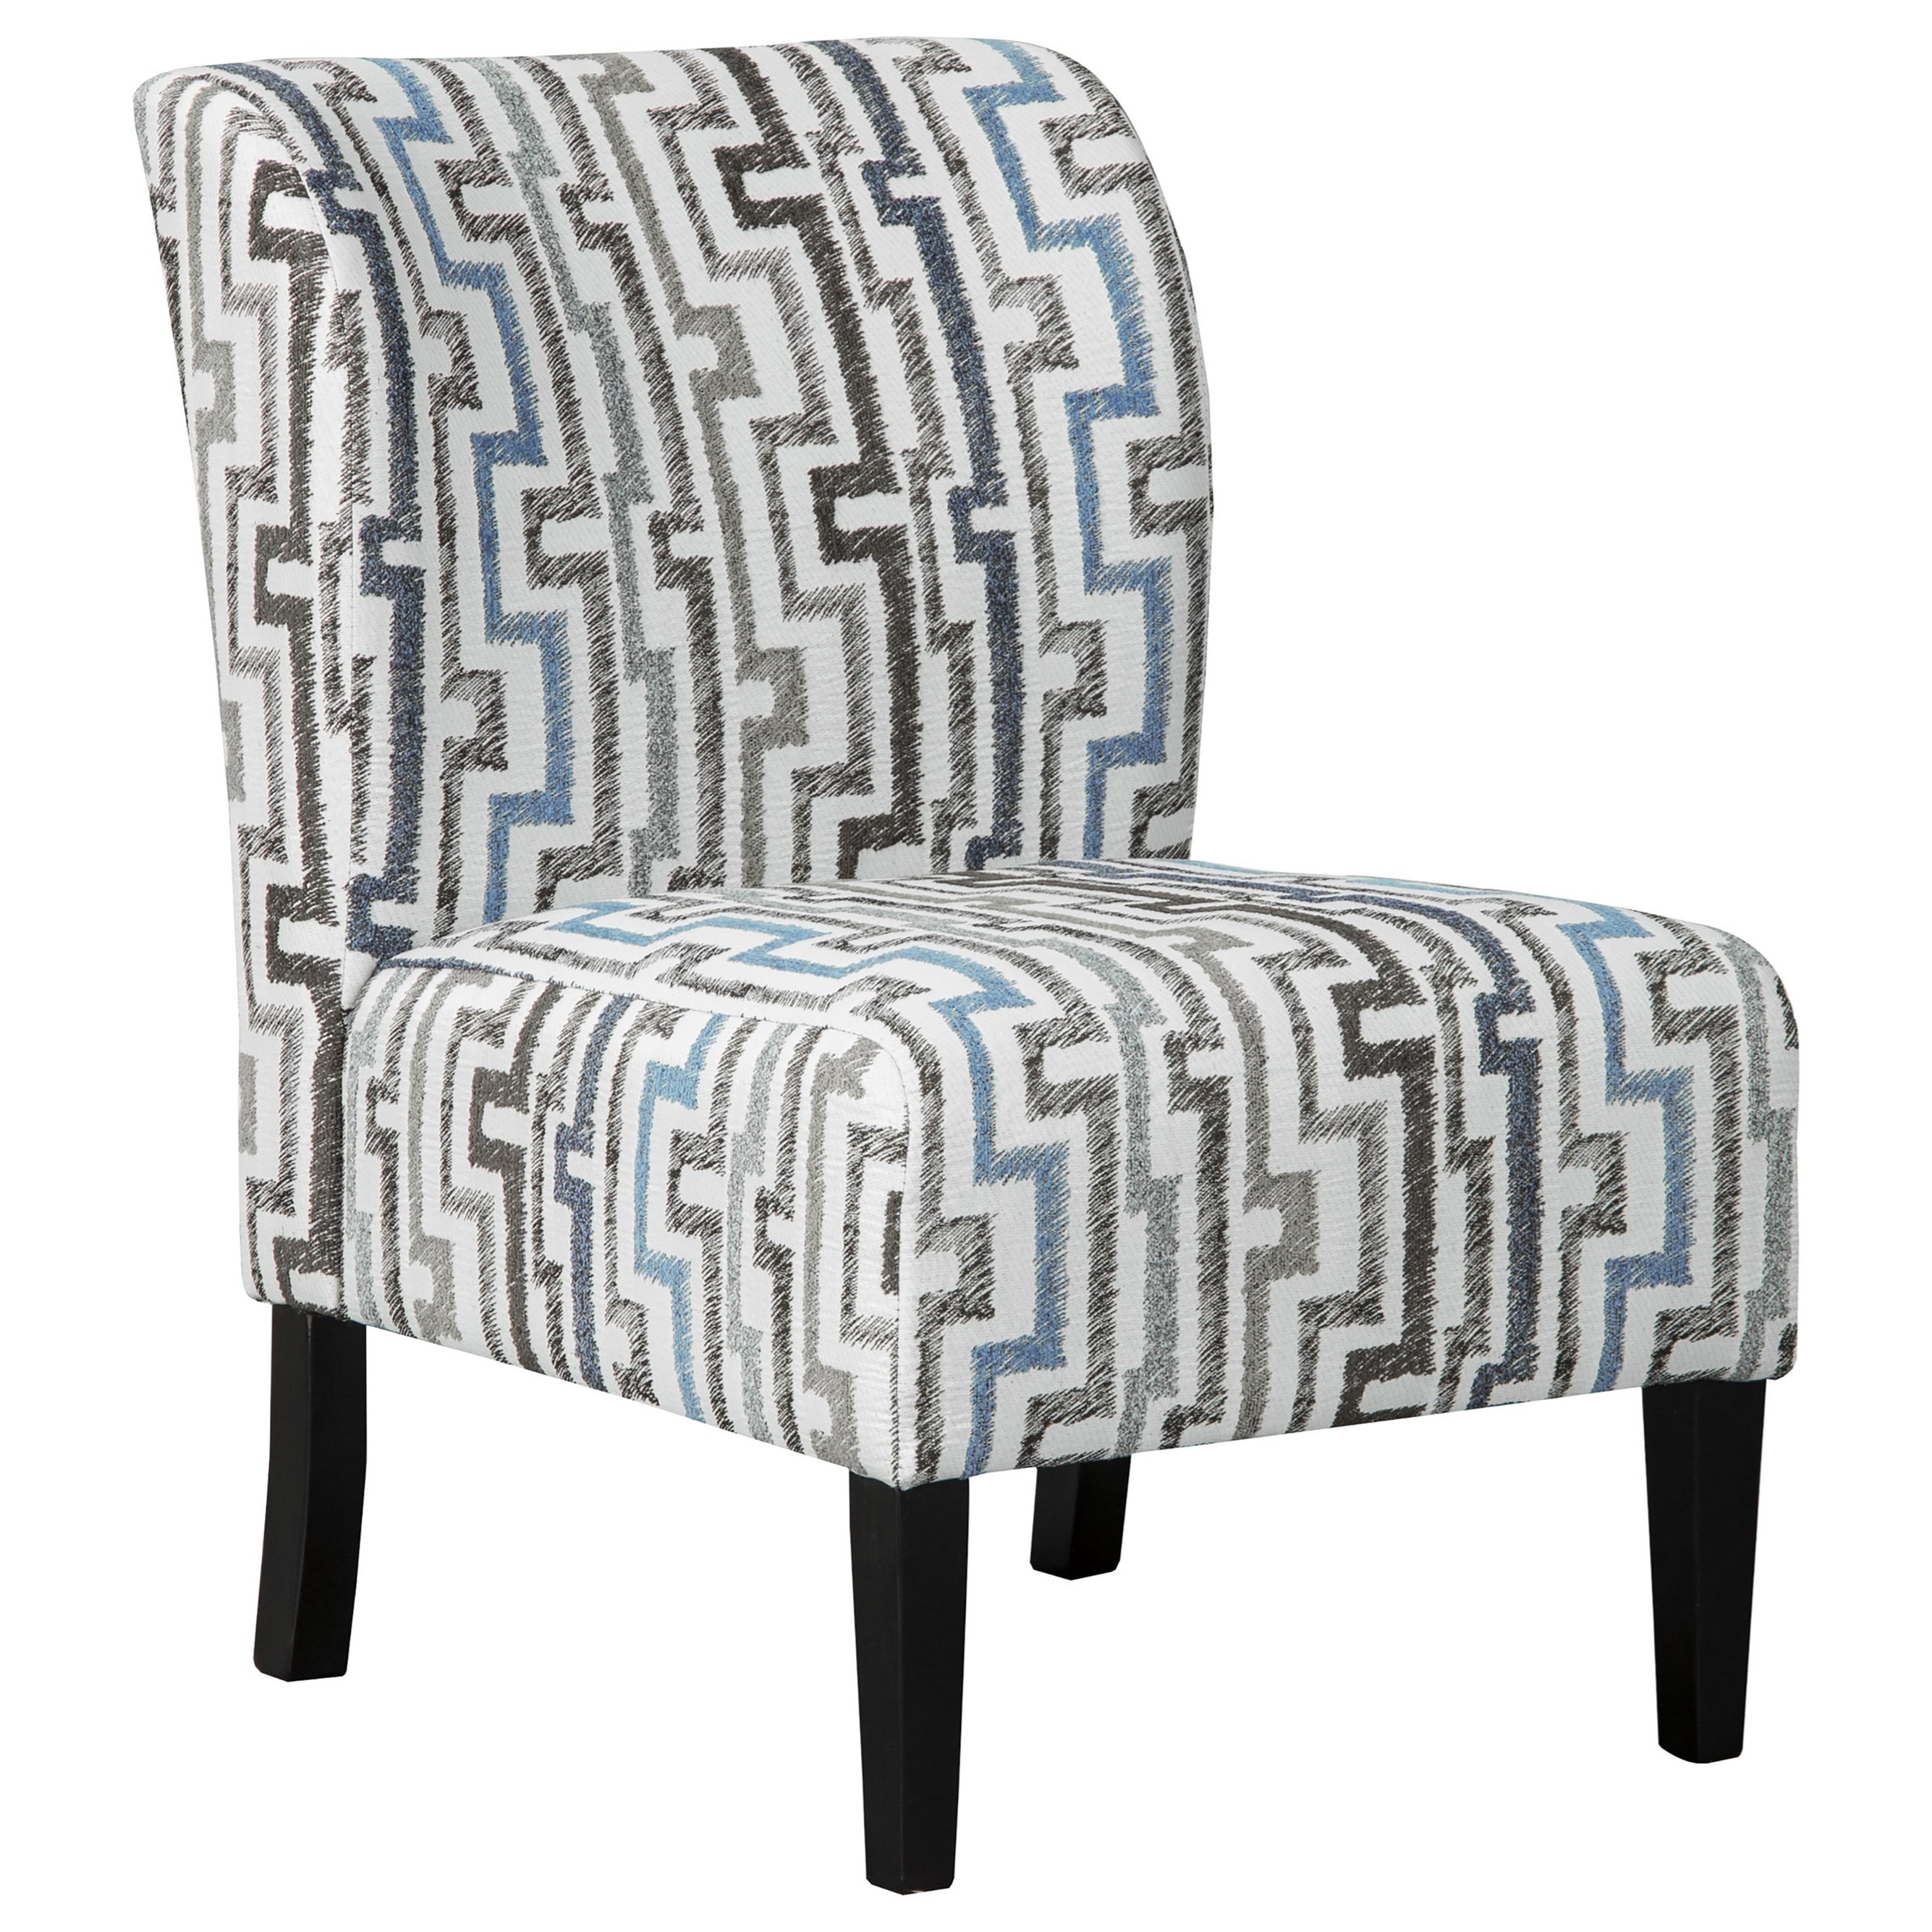 Benchcraft Alsen Accent Chair - Item Number: 7390160